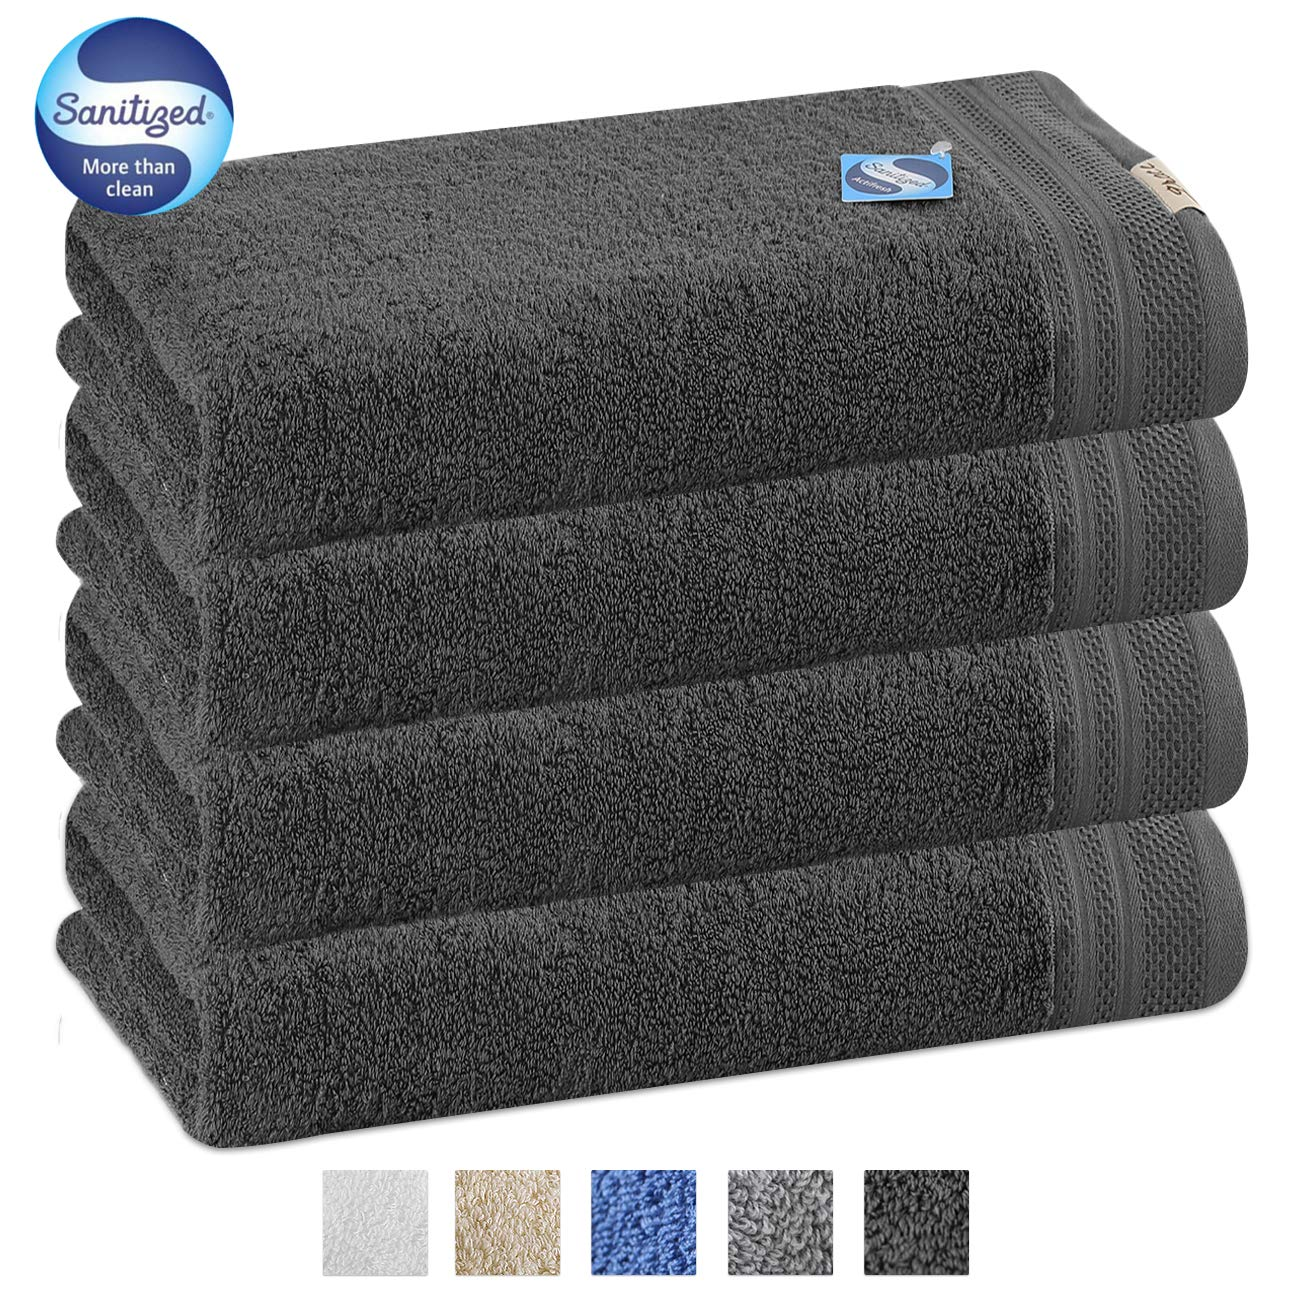 GRACE ORCHID Luxury 4 Piece Bath Towel Set 56x28 Inch -100% Long Staple Cotton Super Soft,Ultra Absorbent and Machine Washable Bath Towels for Bathroom, Hotel and Spa Quality (Dark Grey)